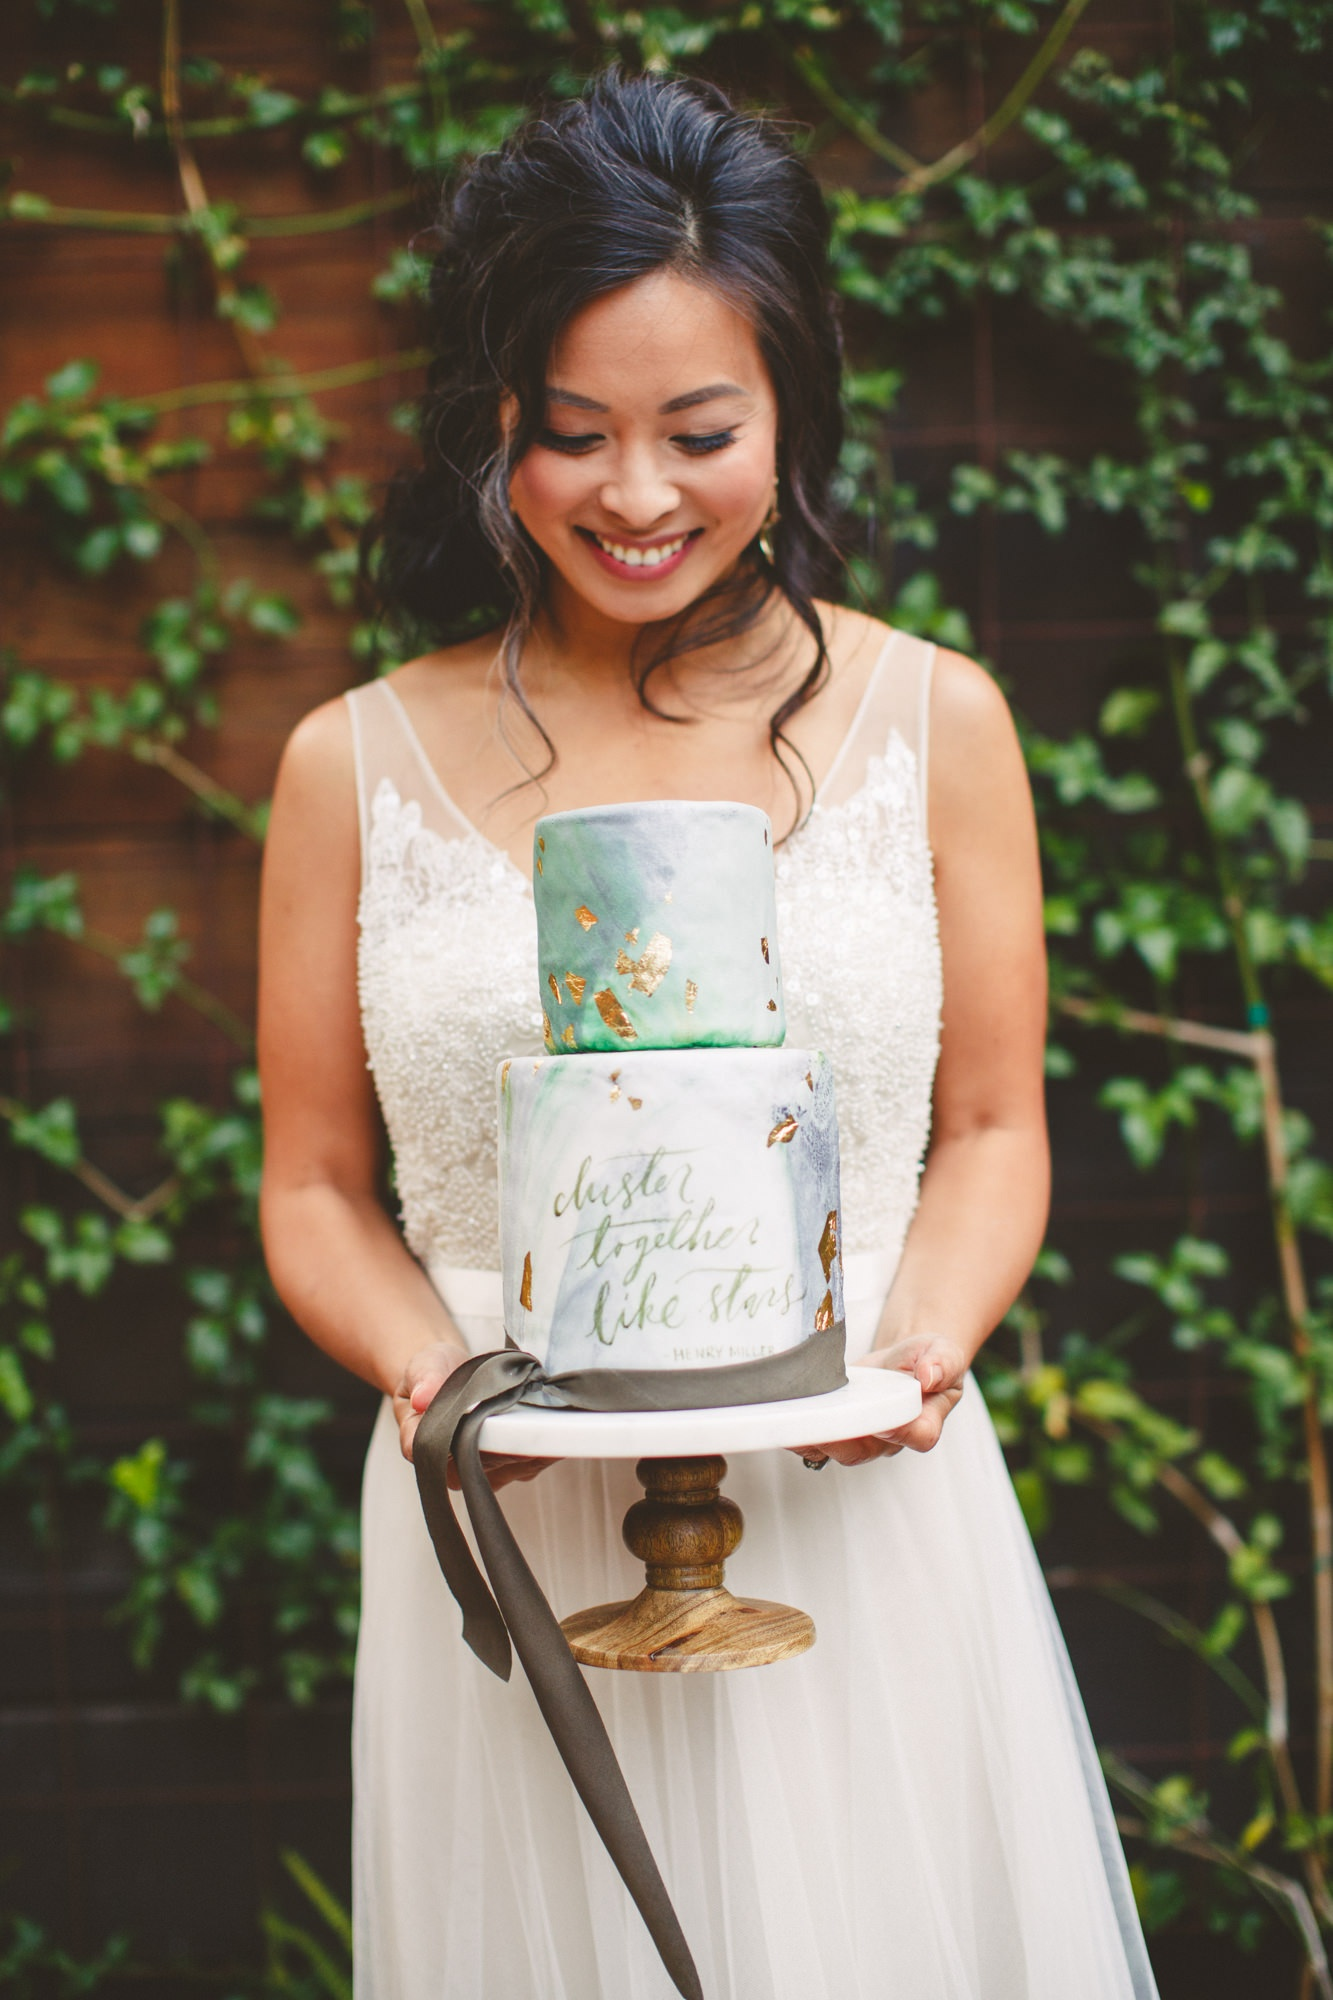 Big Sur wedding inspiration photoshoot at Glen Oaks styled and coordinated by Grace Lorenzen (let her plan all your events, she's amazing). Cake script by Whitney Hoffman of Rosey Calligraphy, photo by Cameron Ingall's Photography.